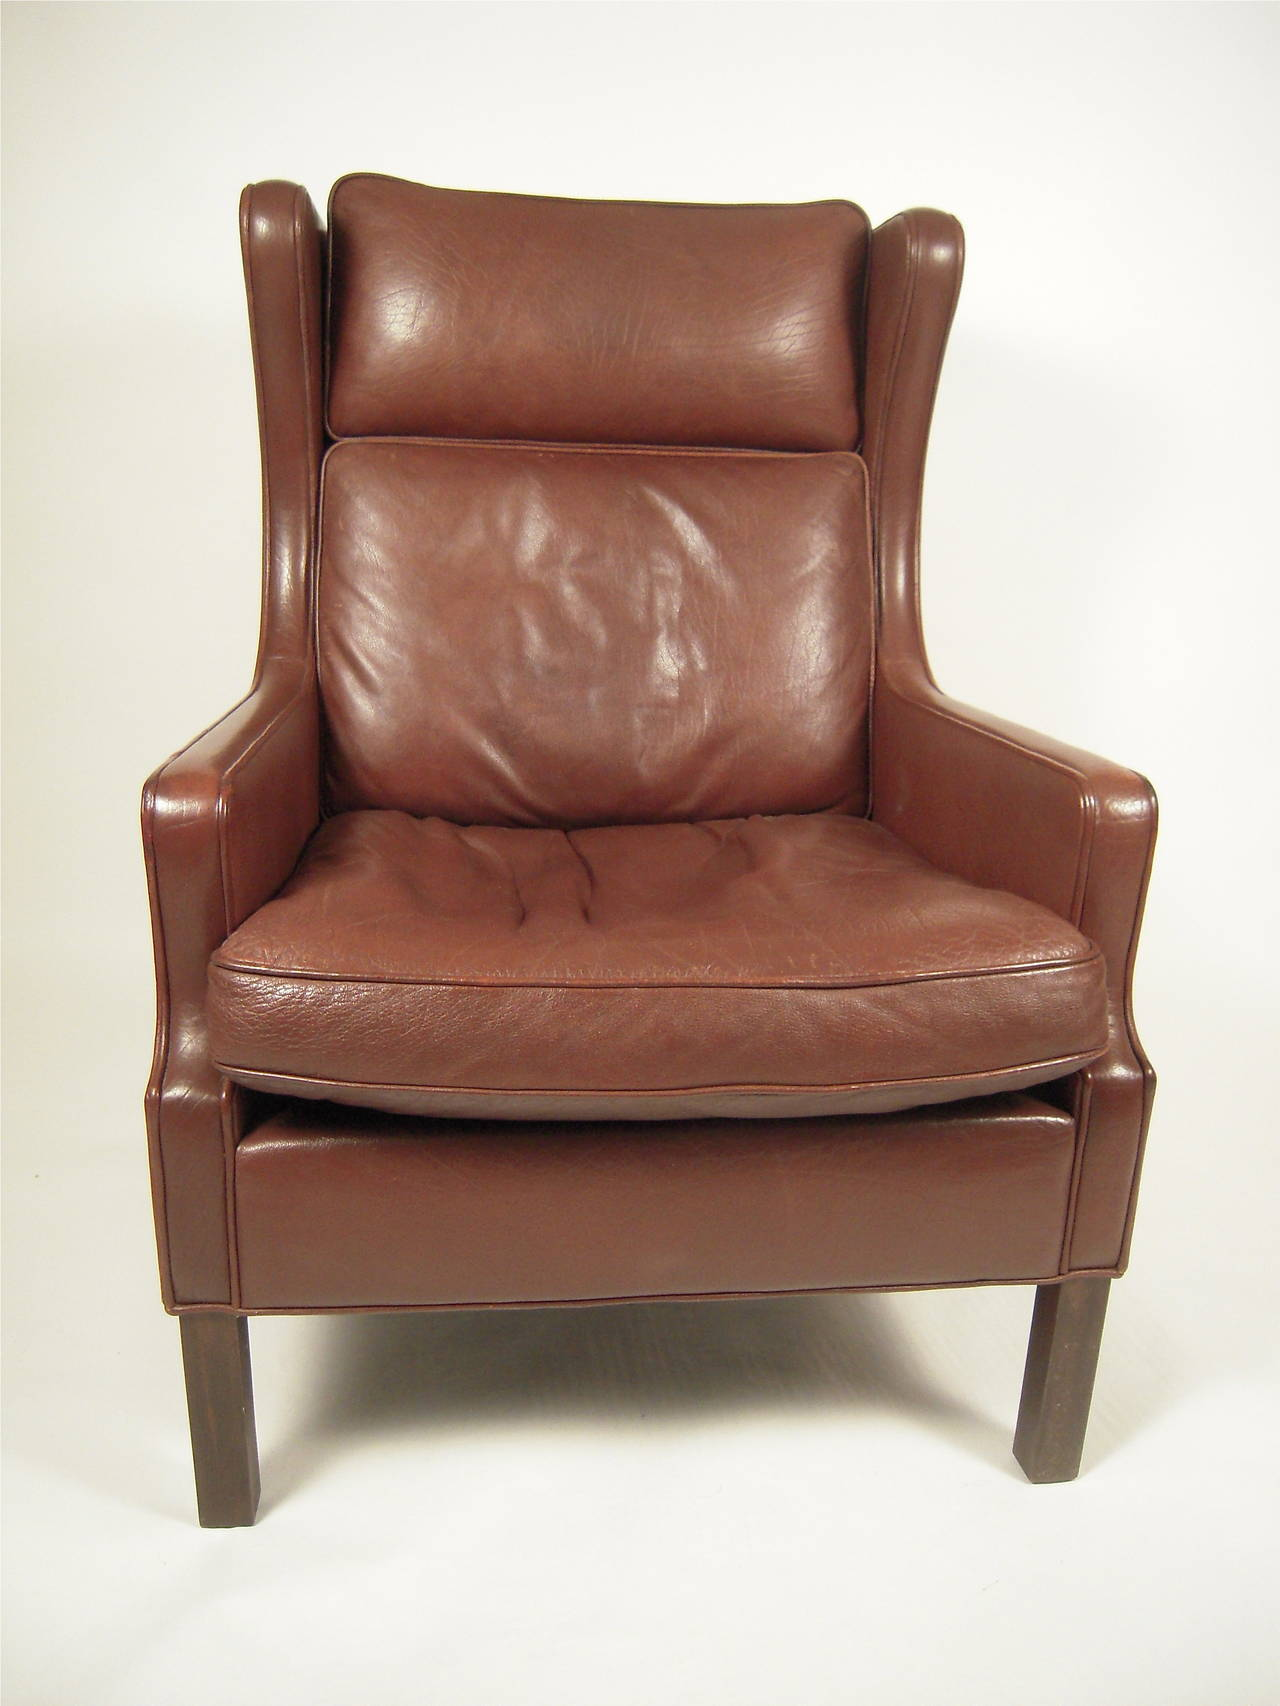 Vintage Danish Mid Century Leather Wingback Chair at 1stdibs